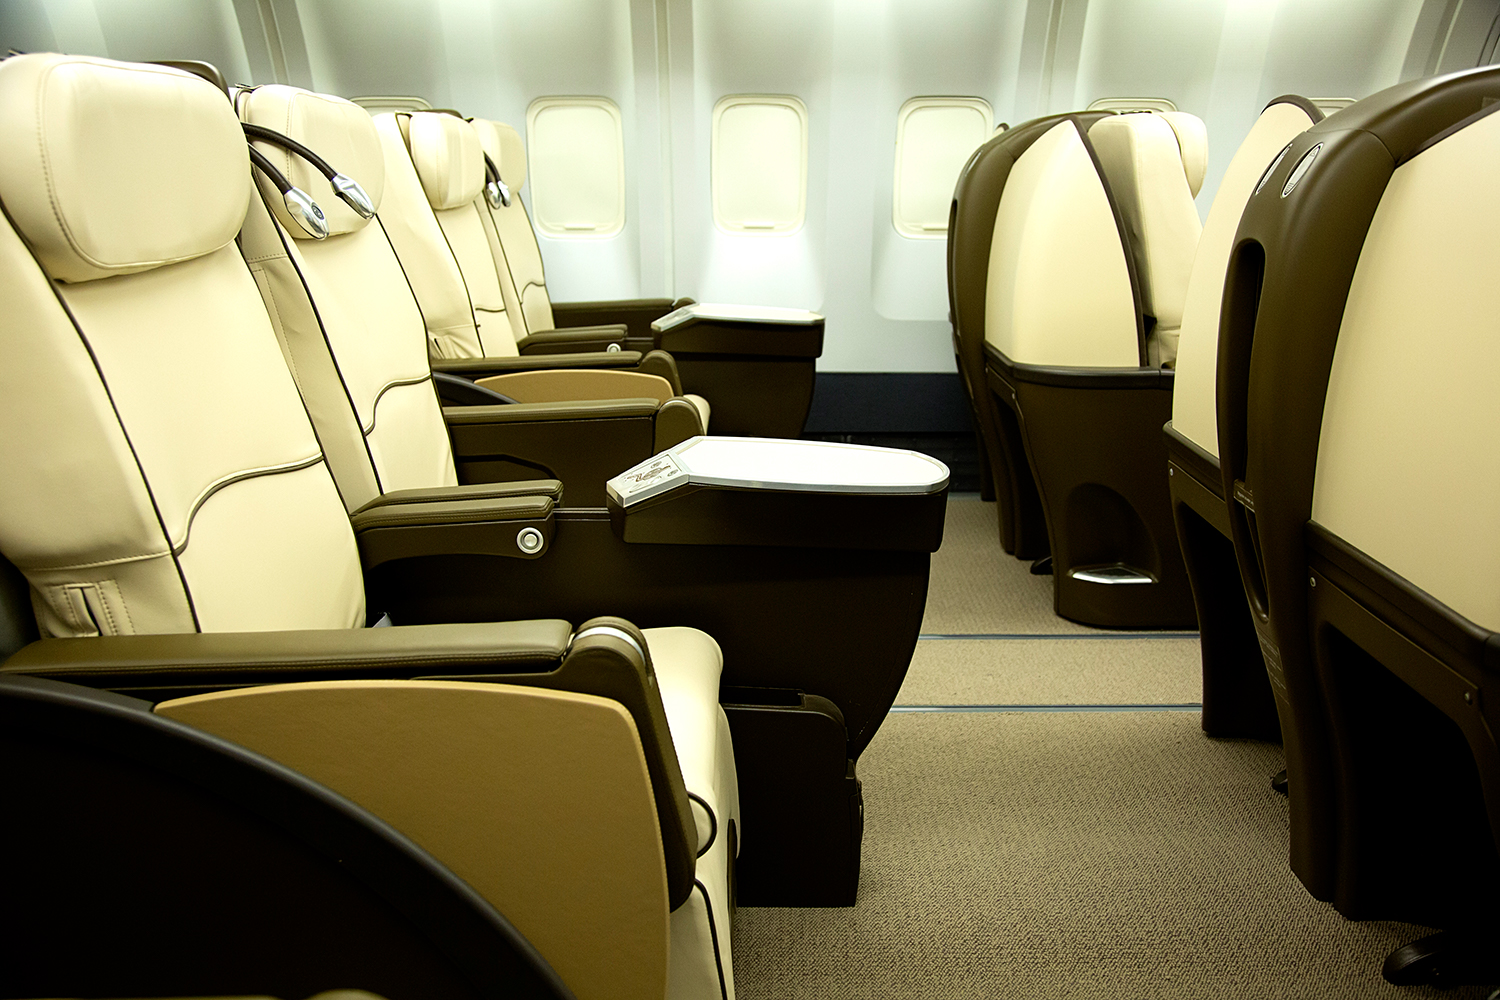 Aeronexus Corporate Private Jet Charters First Class Service on a Boeing 767